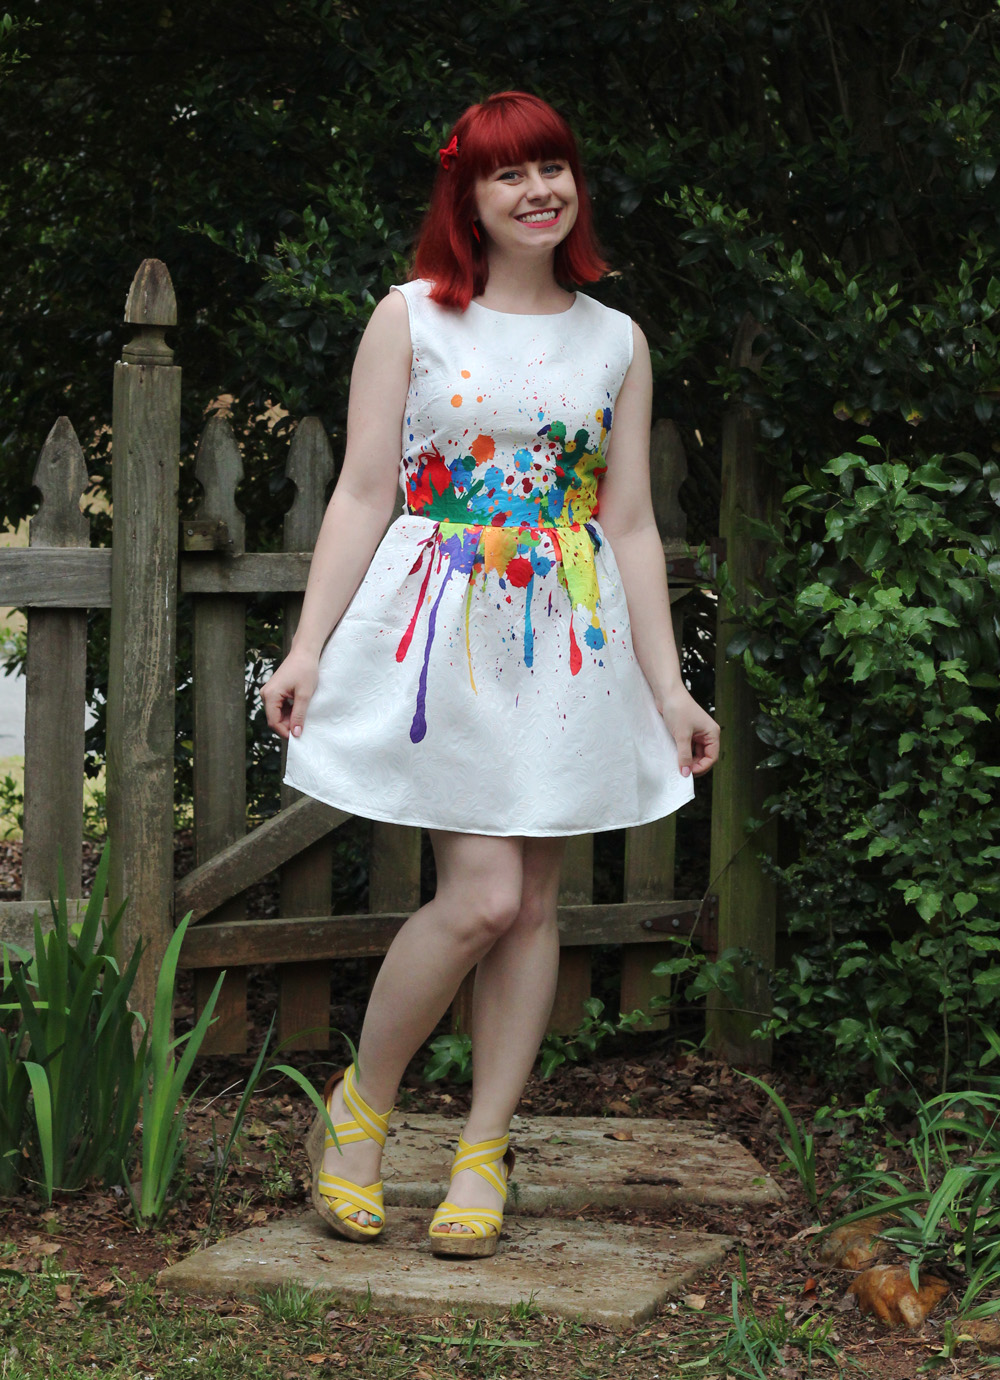 White Dress with Multicolored Graffiti Paint Splatter and Yellow Wedges